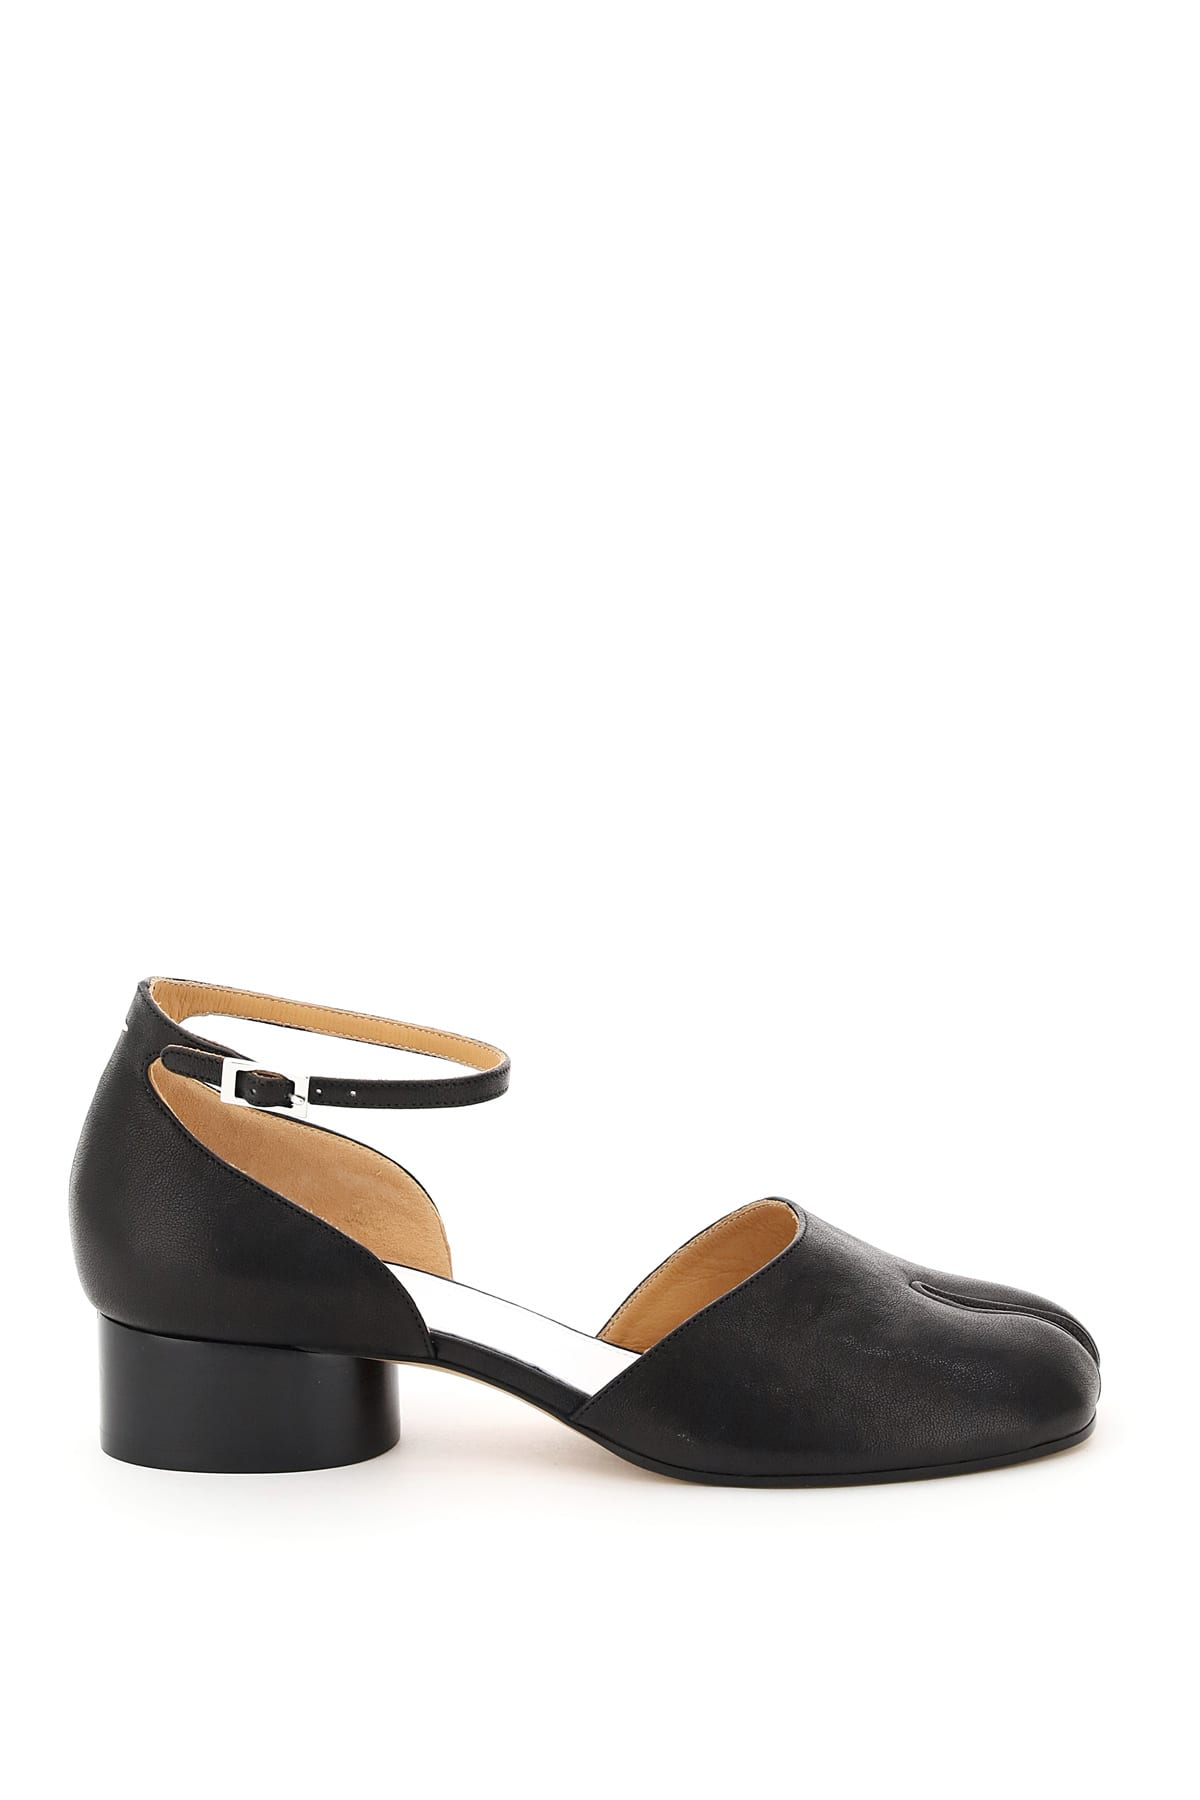 Maison Margiela Low heels TABI SANDALS